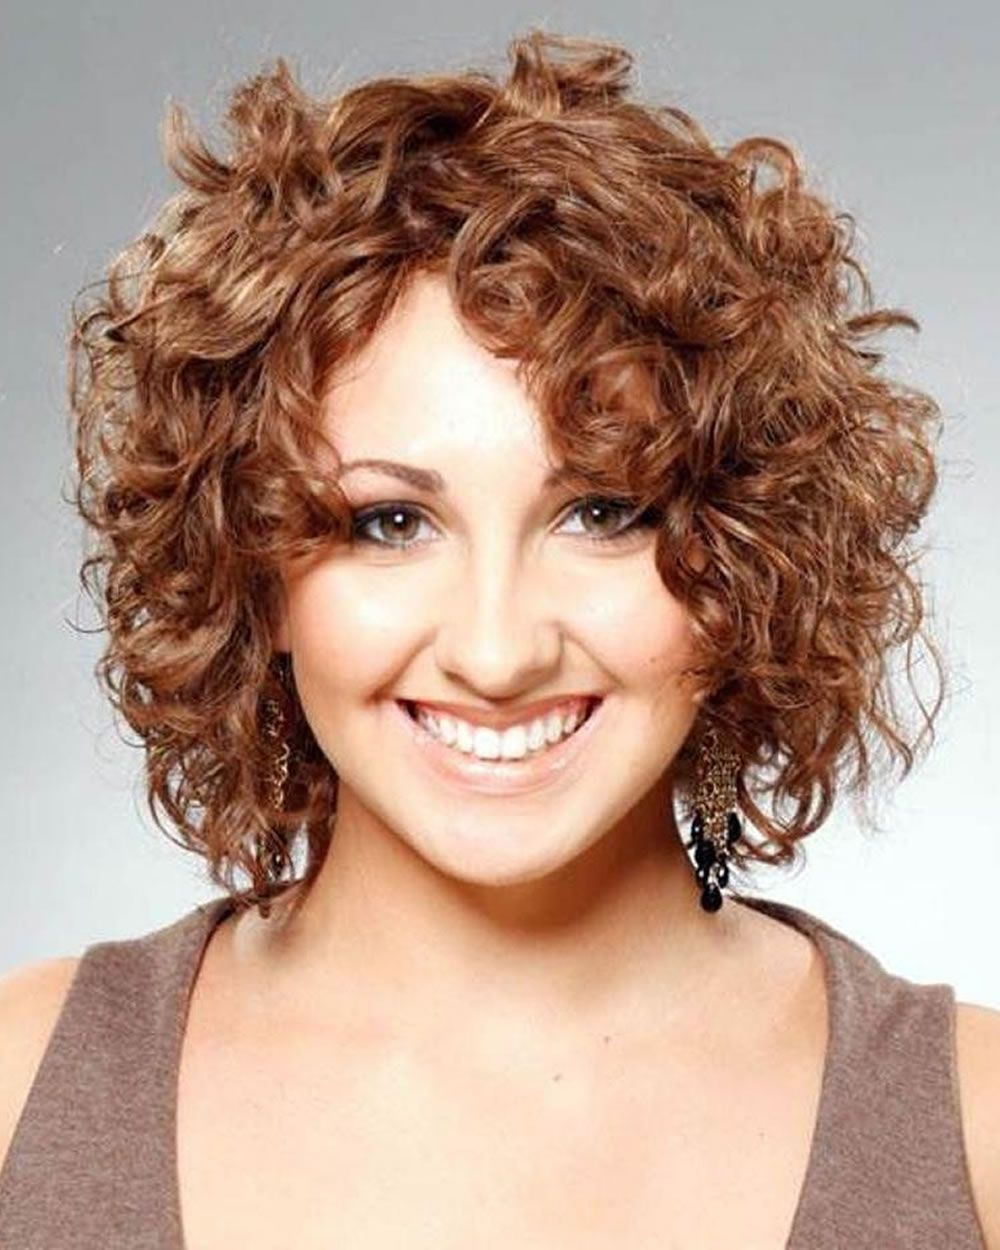 30+ Current Female Hairstyles 2016 » Hairstyles Pictures - #hair #hairstyle  #hairstyles #haircut #haircuts #hairstylesforwoman #h… | Short curly  hairstyles for women, Short curly haircuts, Haircuts for curly hair